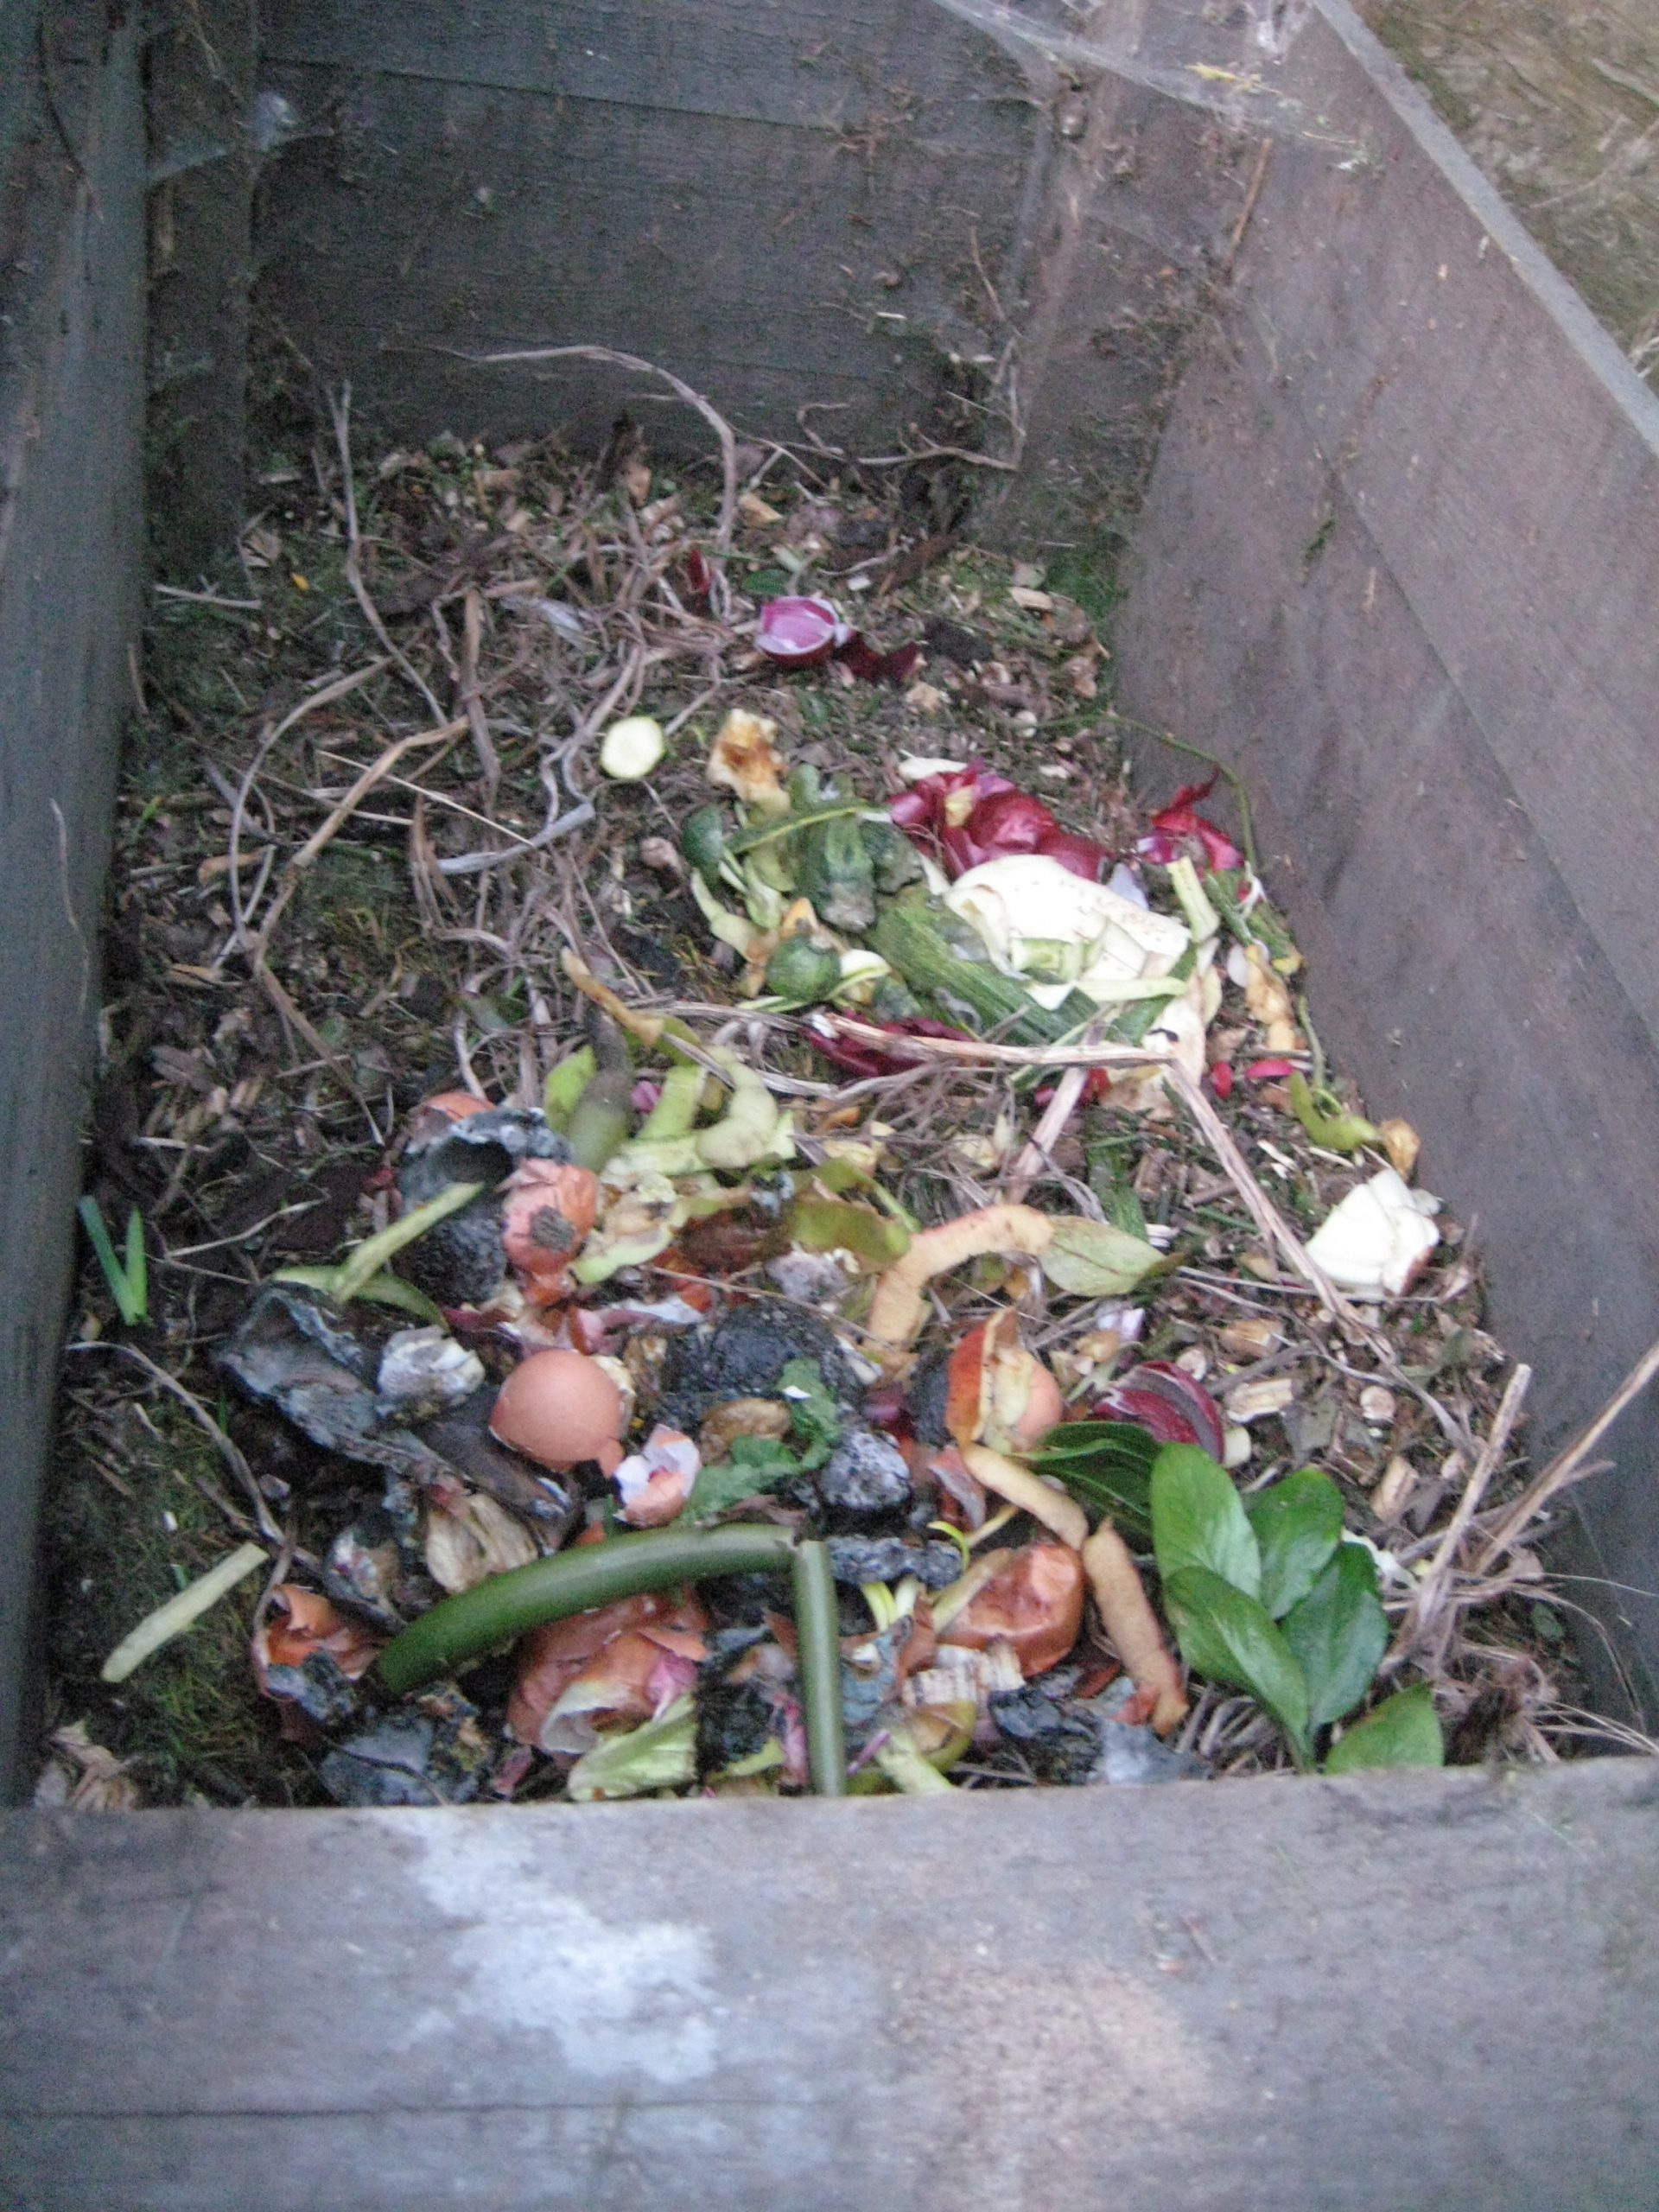 Biodynamic Composting